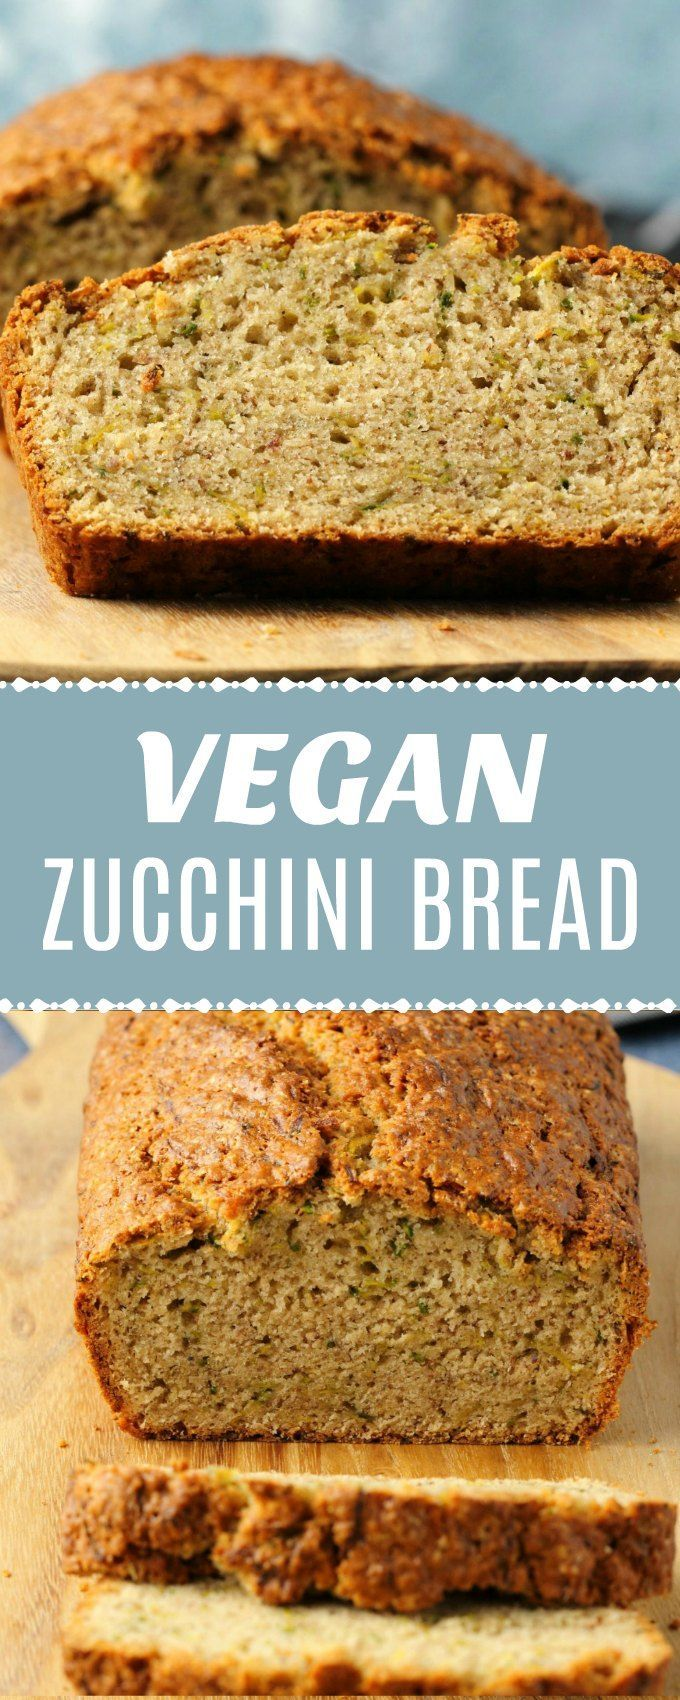 Wholesome And Delicious Vegan Zucchini Bread Fluffy And Perfectly Moist You Ll Never Suspect Vegan Zucchini Bread Healthy Vegan Snacks Delicious Vegan Recipes